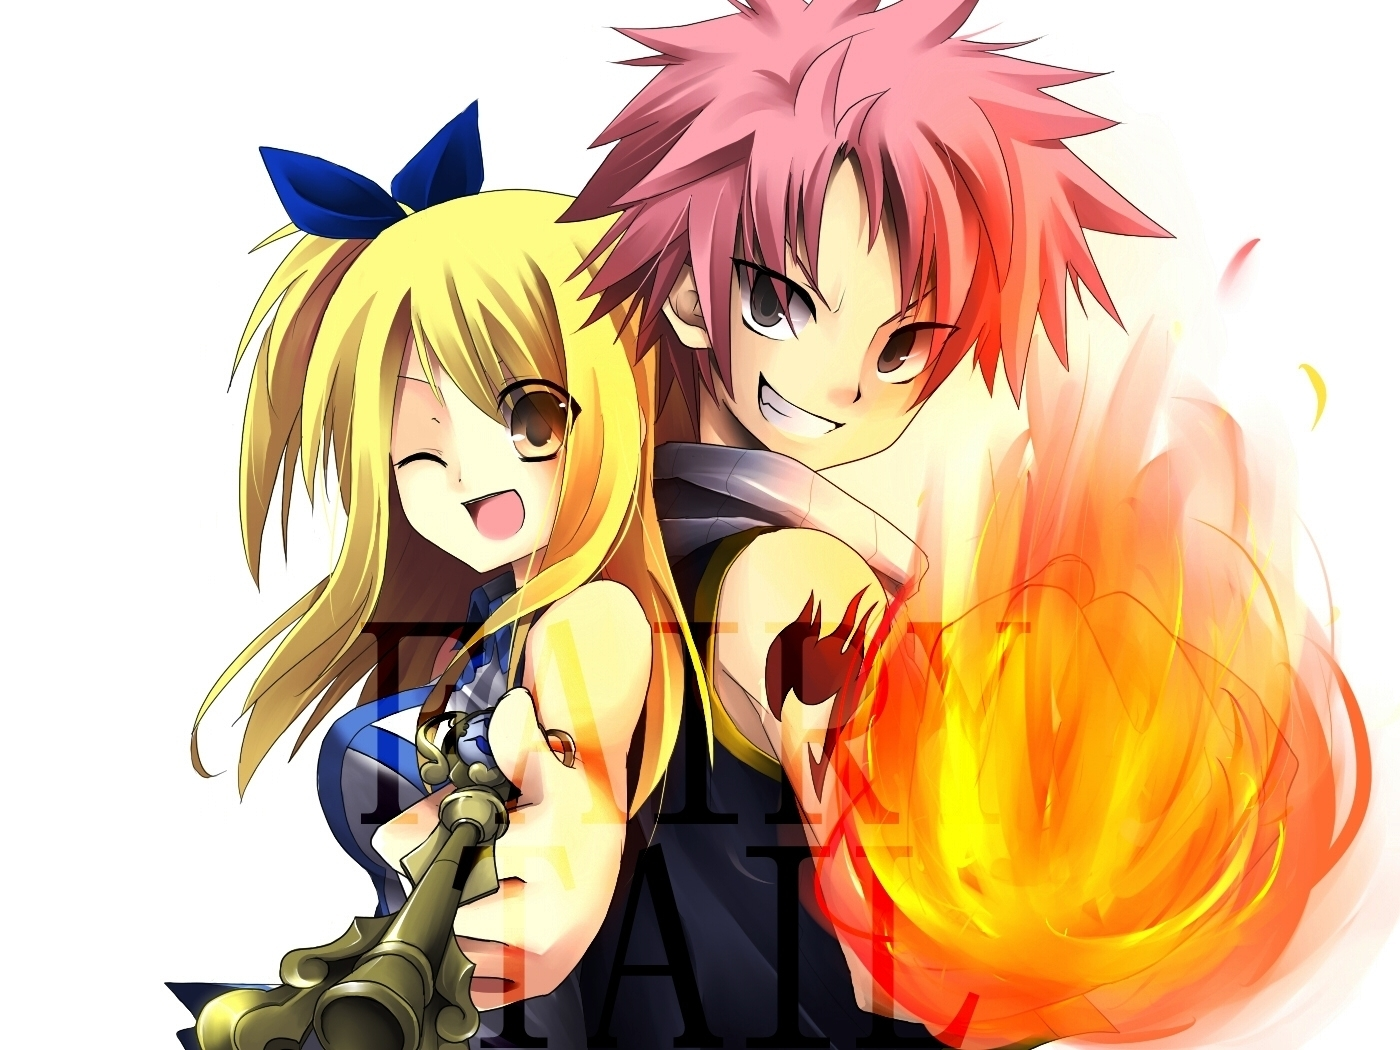 Natsu Dragneel images Lucy and Natsu wallpaper photos 19374099 1400x1050